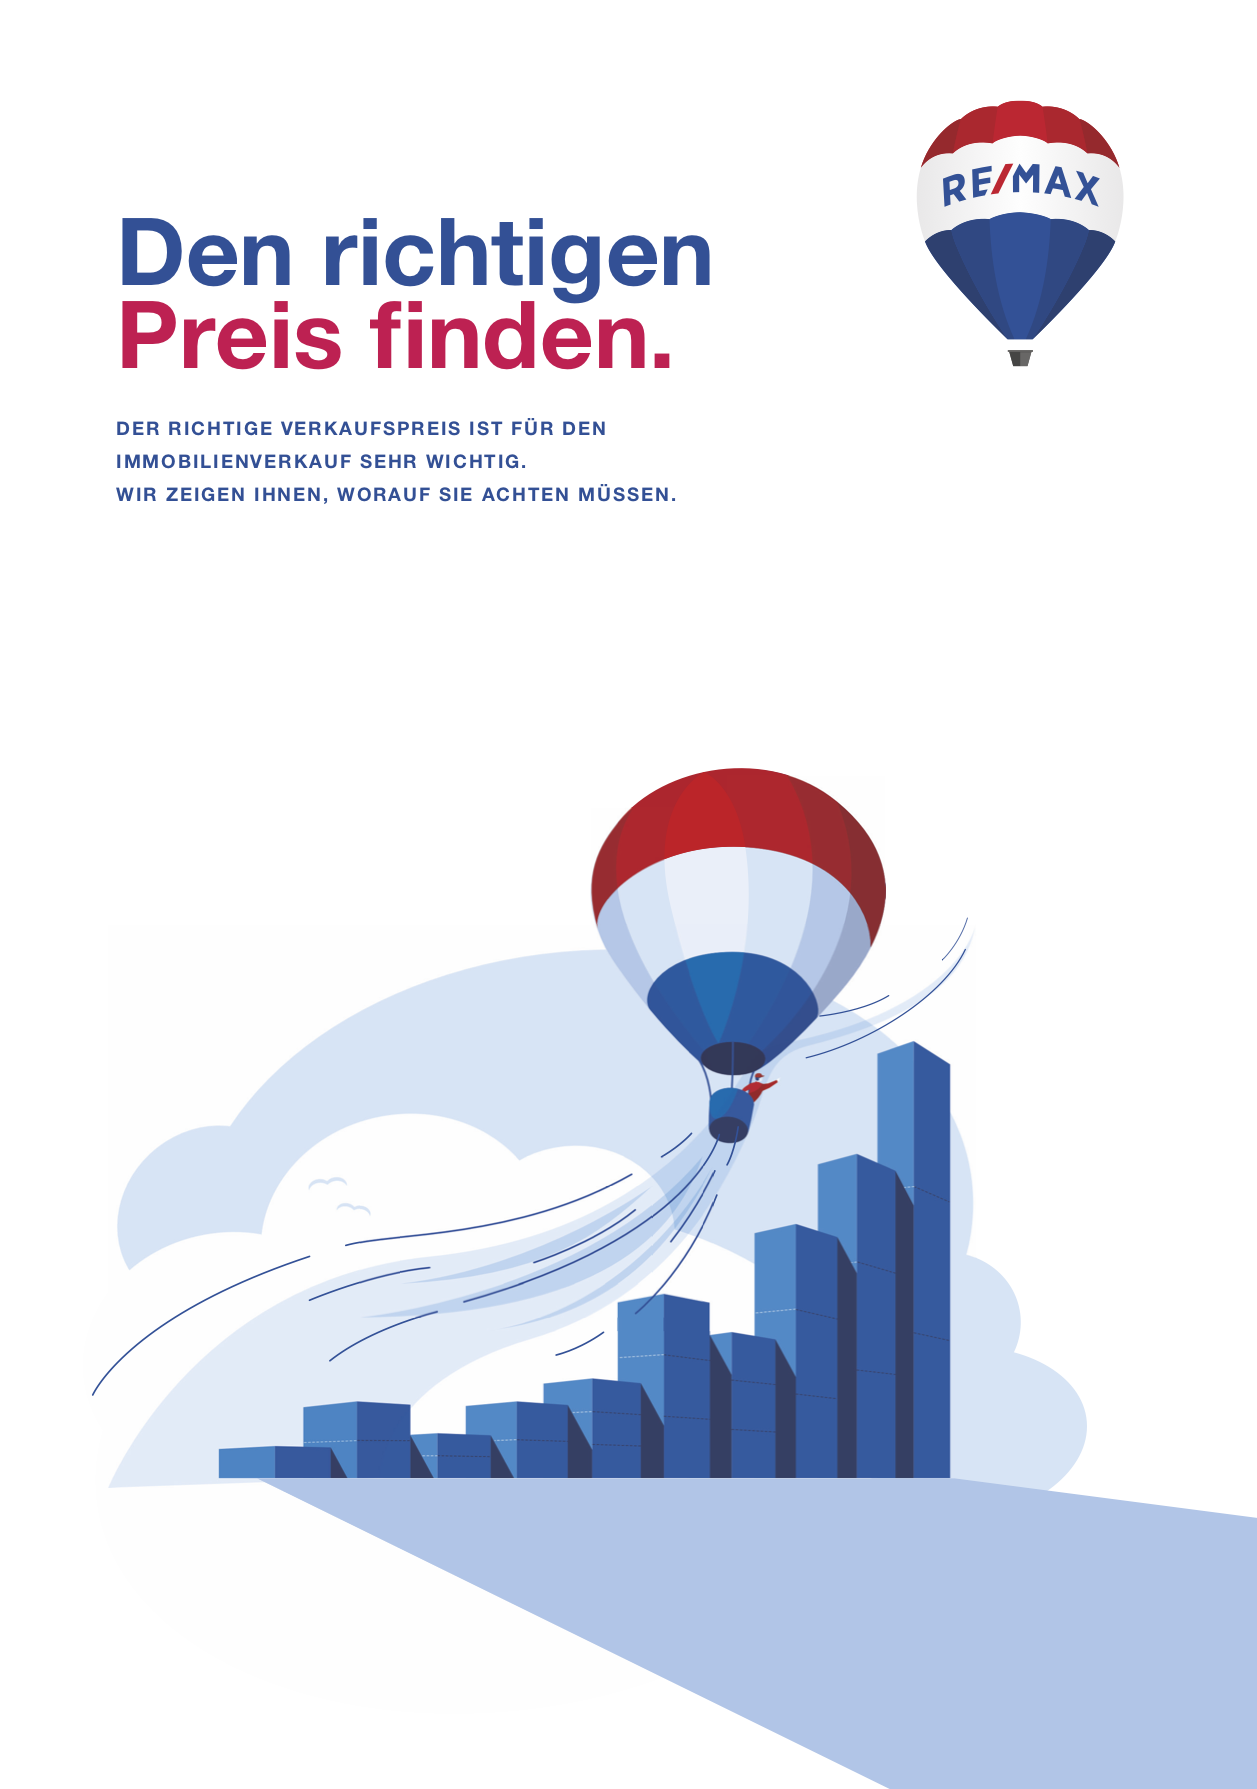 Ratgeber-RE_MAX-Preisfindung-Immobilie